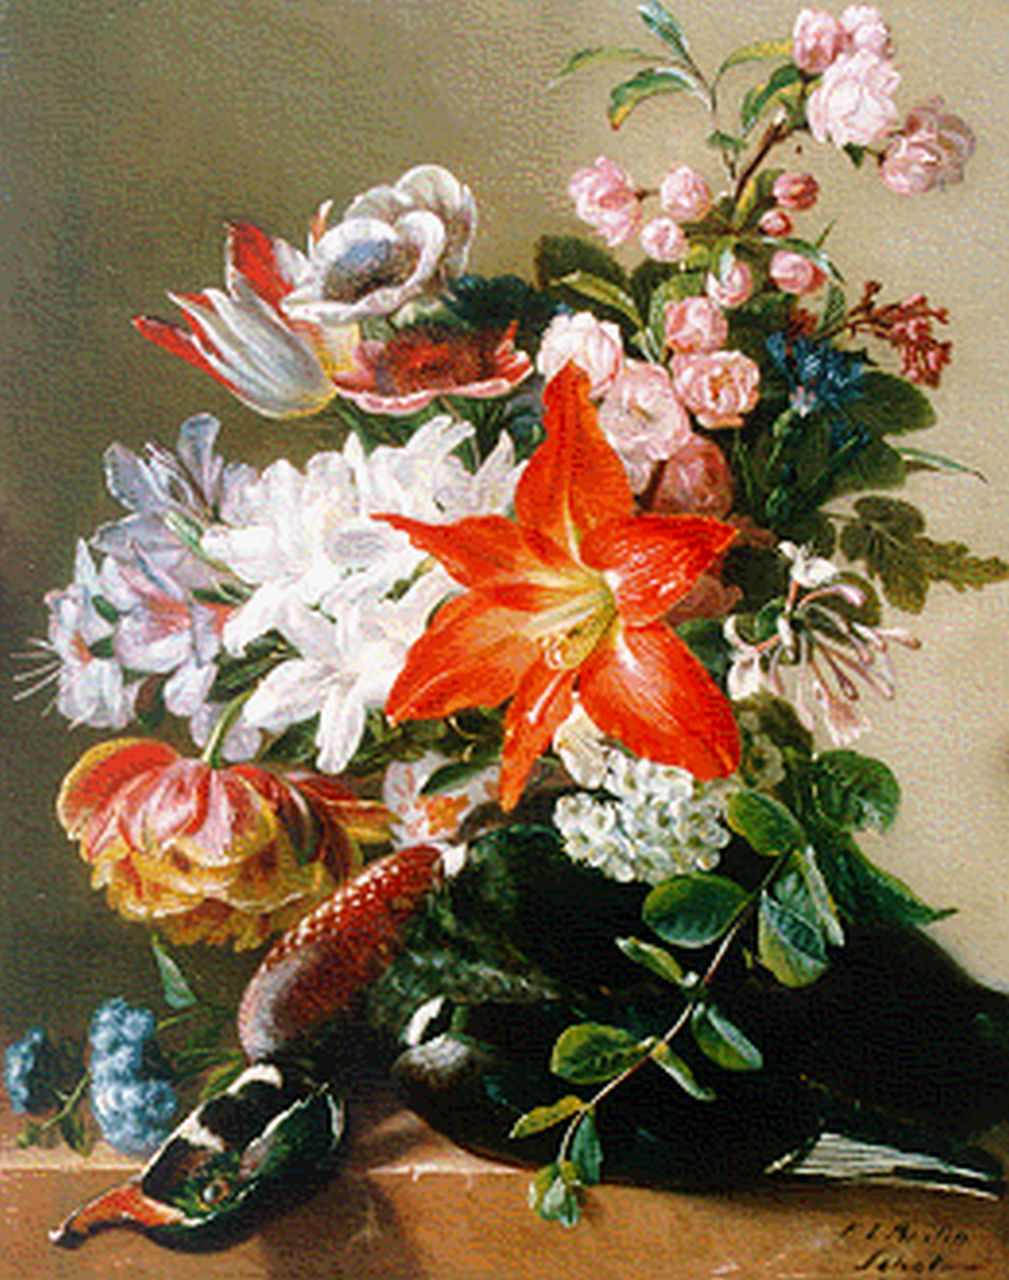 Schot F.L.  | Francina Louise Schot, A flower still life, oil on panel 43.5 x 34.8 cm, signed l.r.